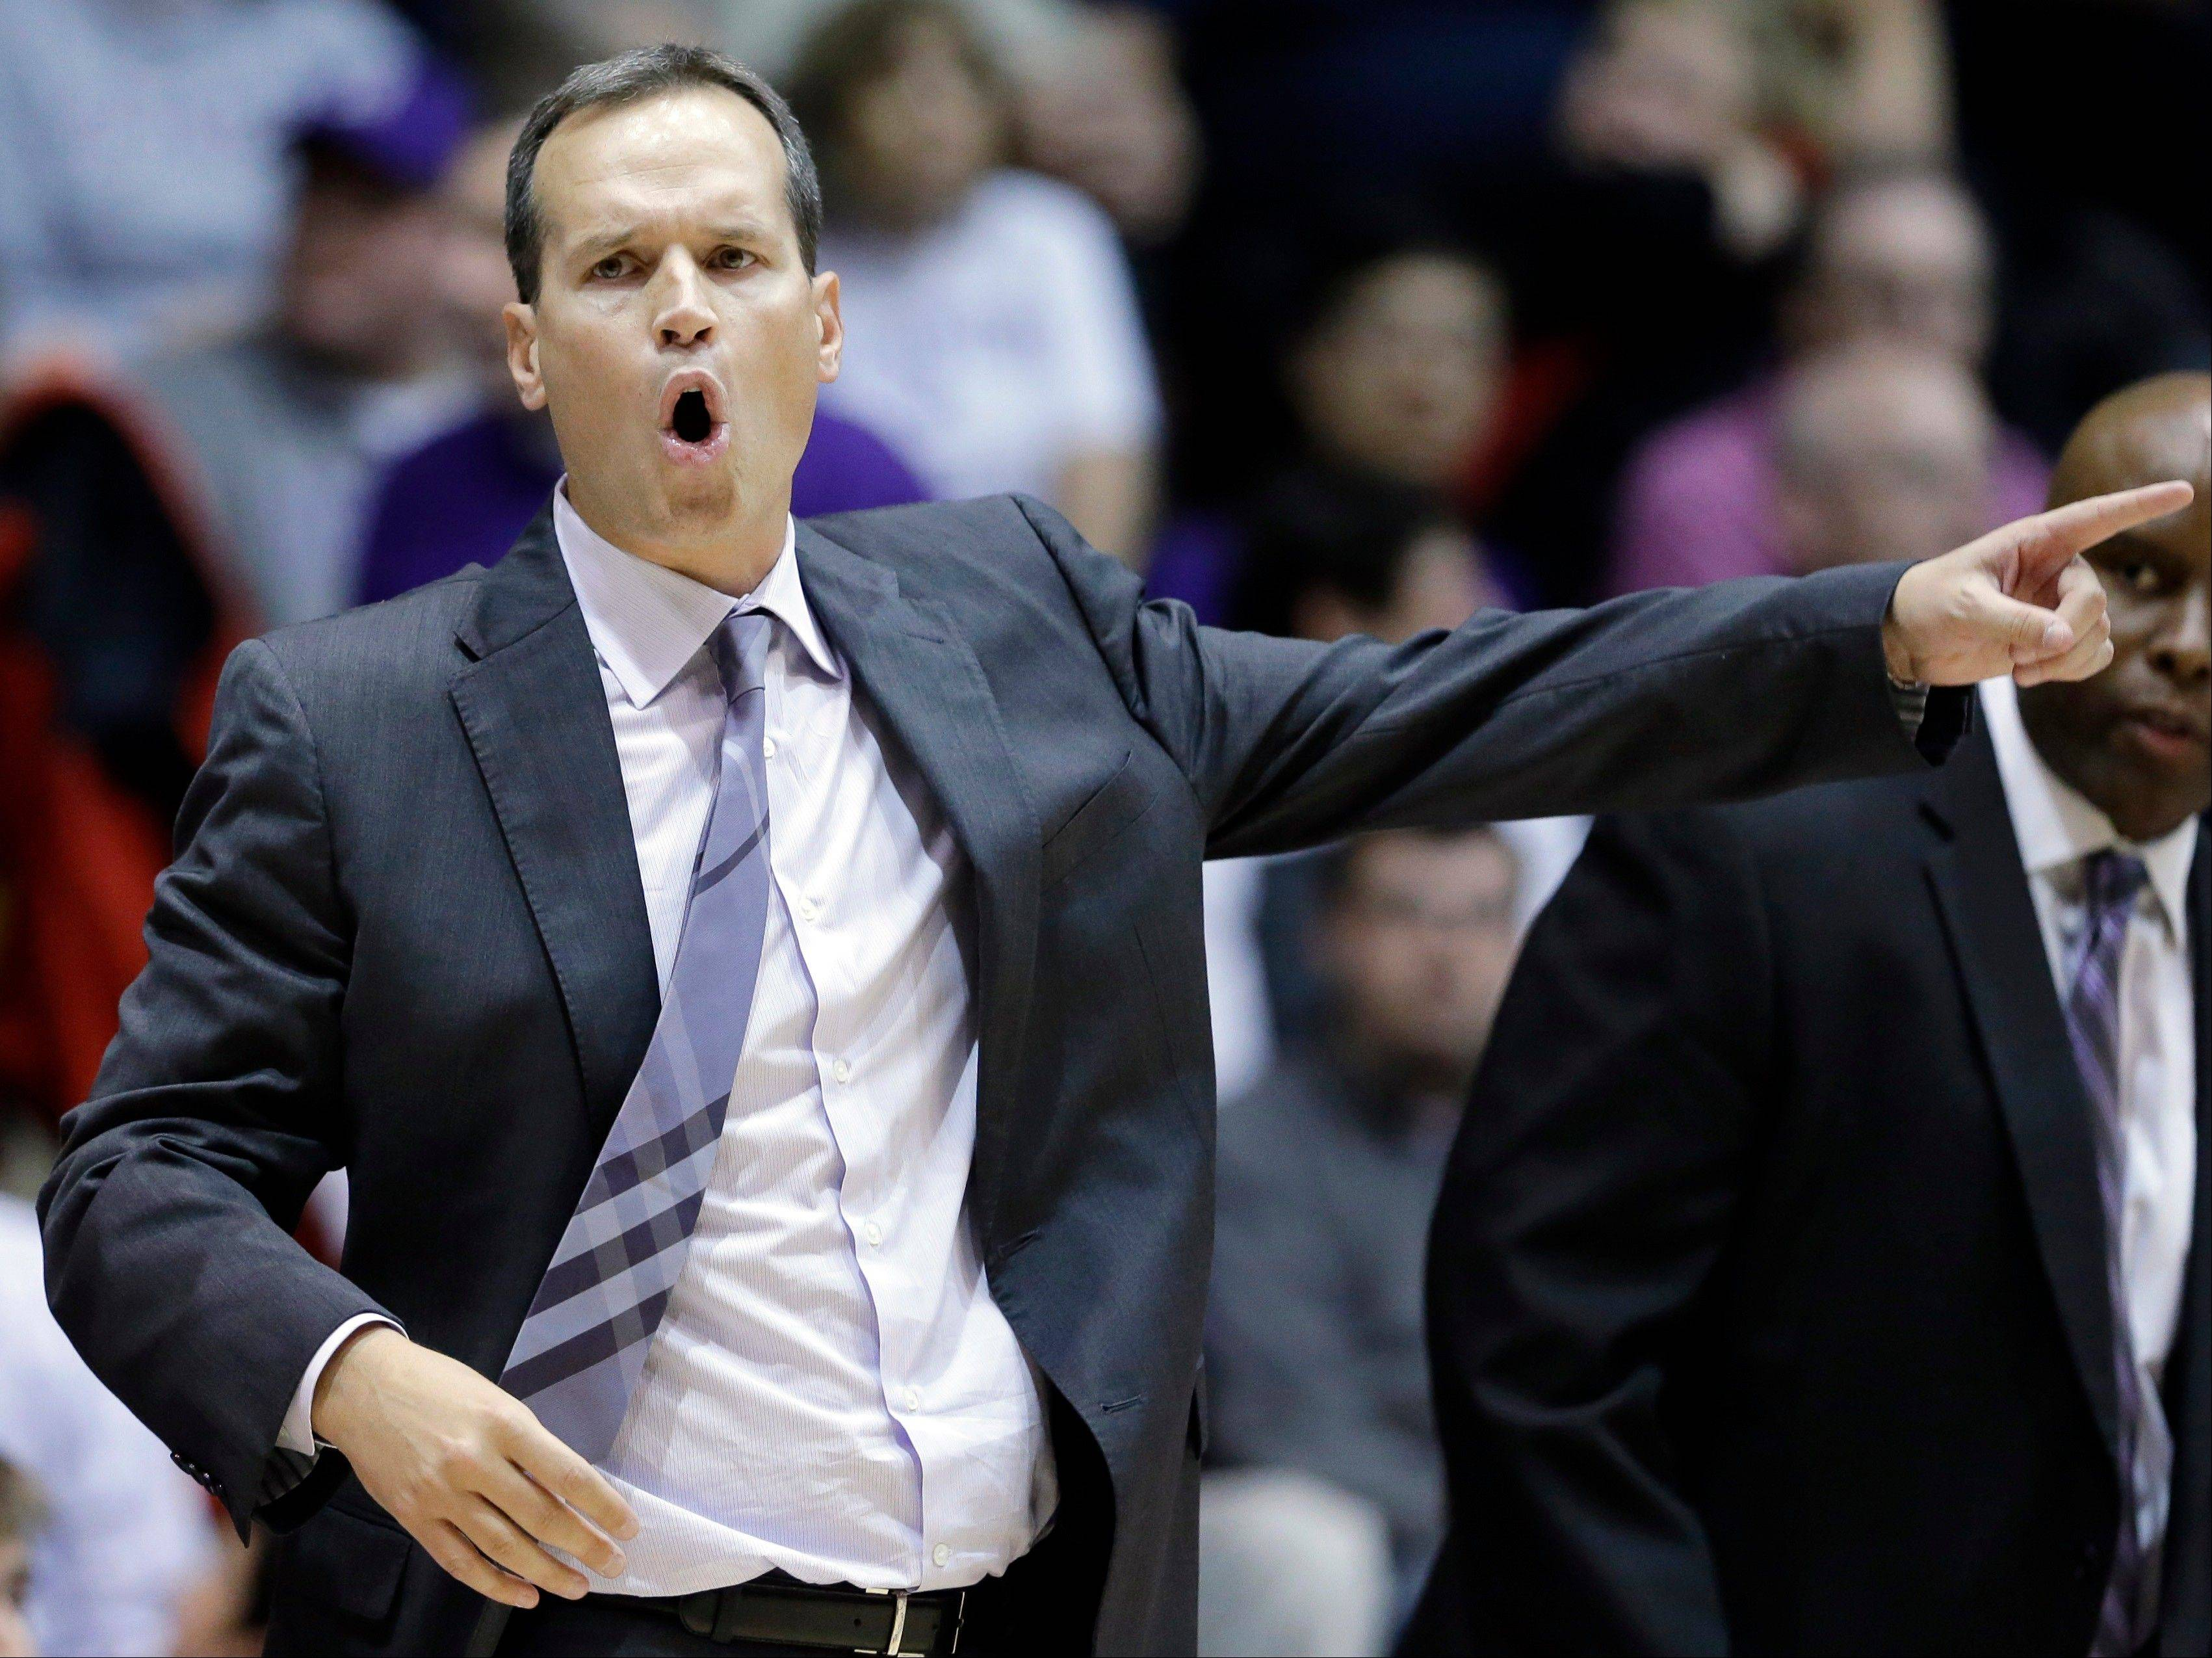 Northwestern head coach Chris Collins consistently barked out instructions to his team during the game against Eastern Illinois University Saturday in Evanston. Northwestern won 72-55.